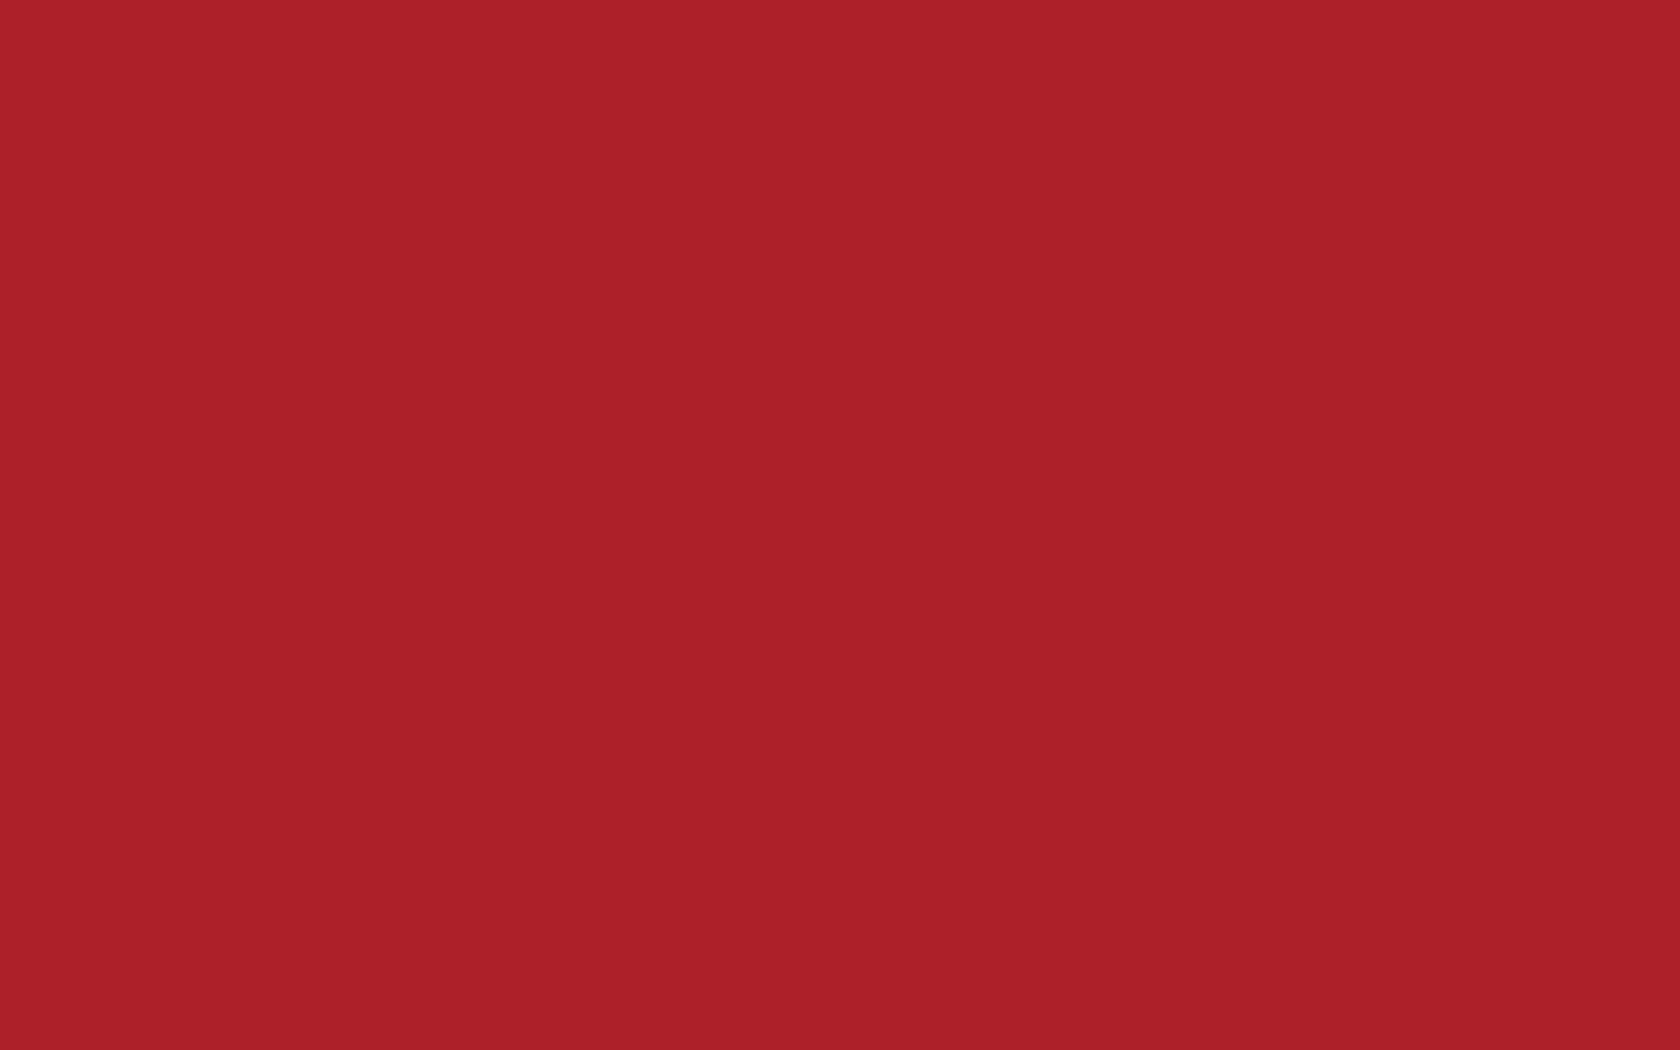 1680x1050 Upsdell Red Solid Color Background